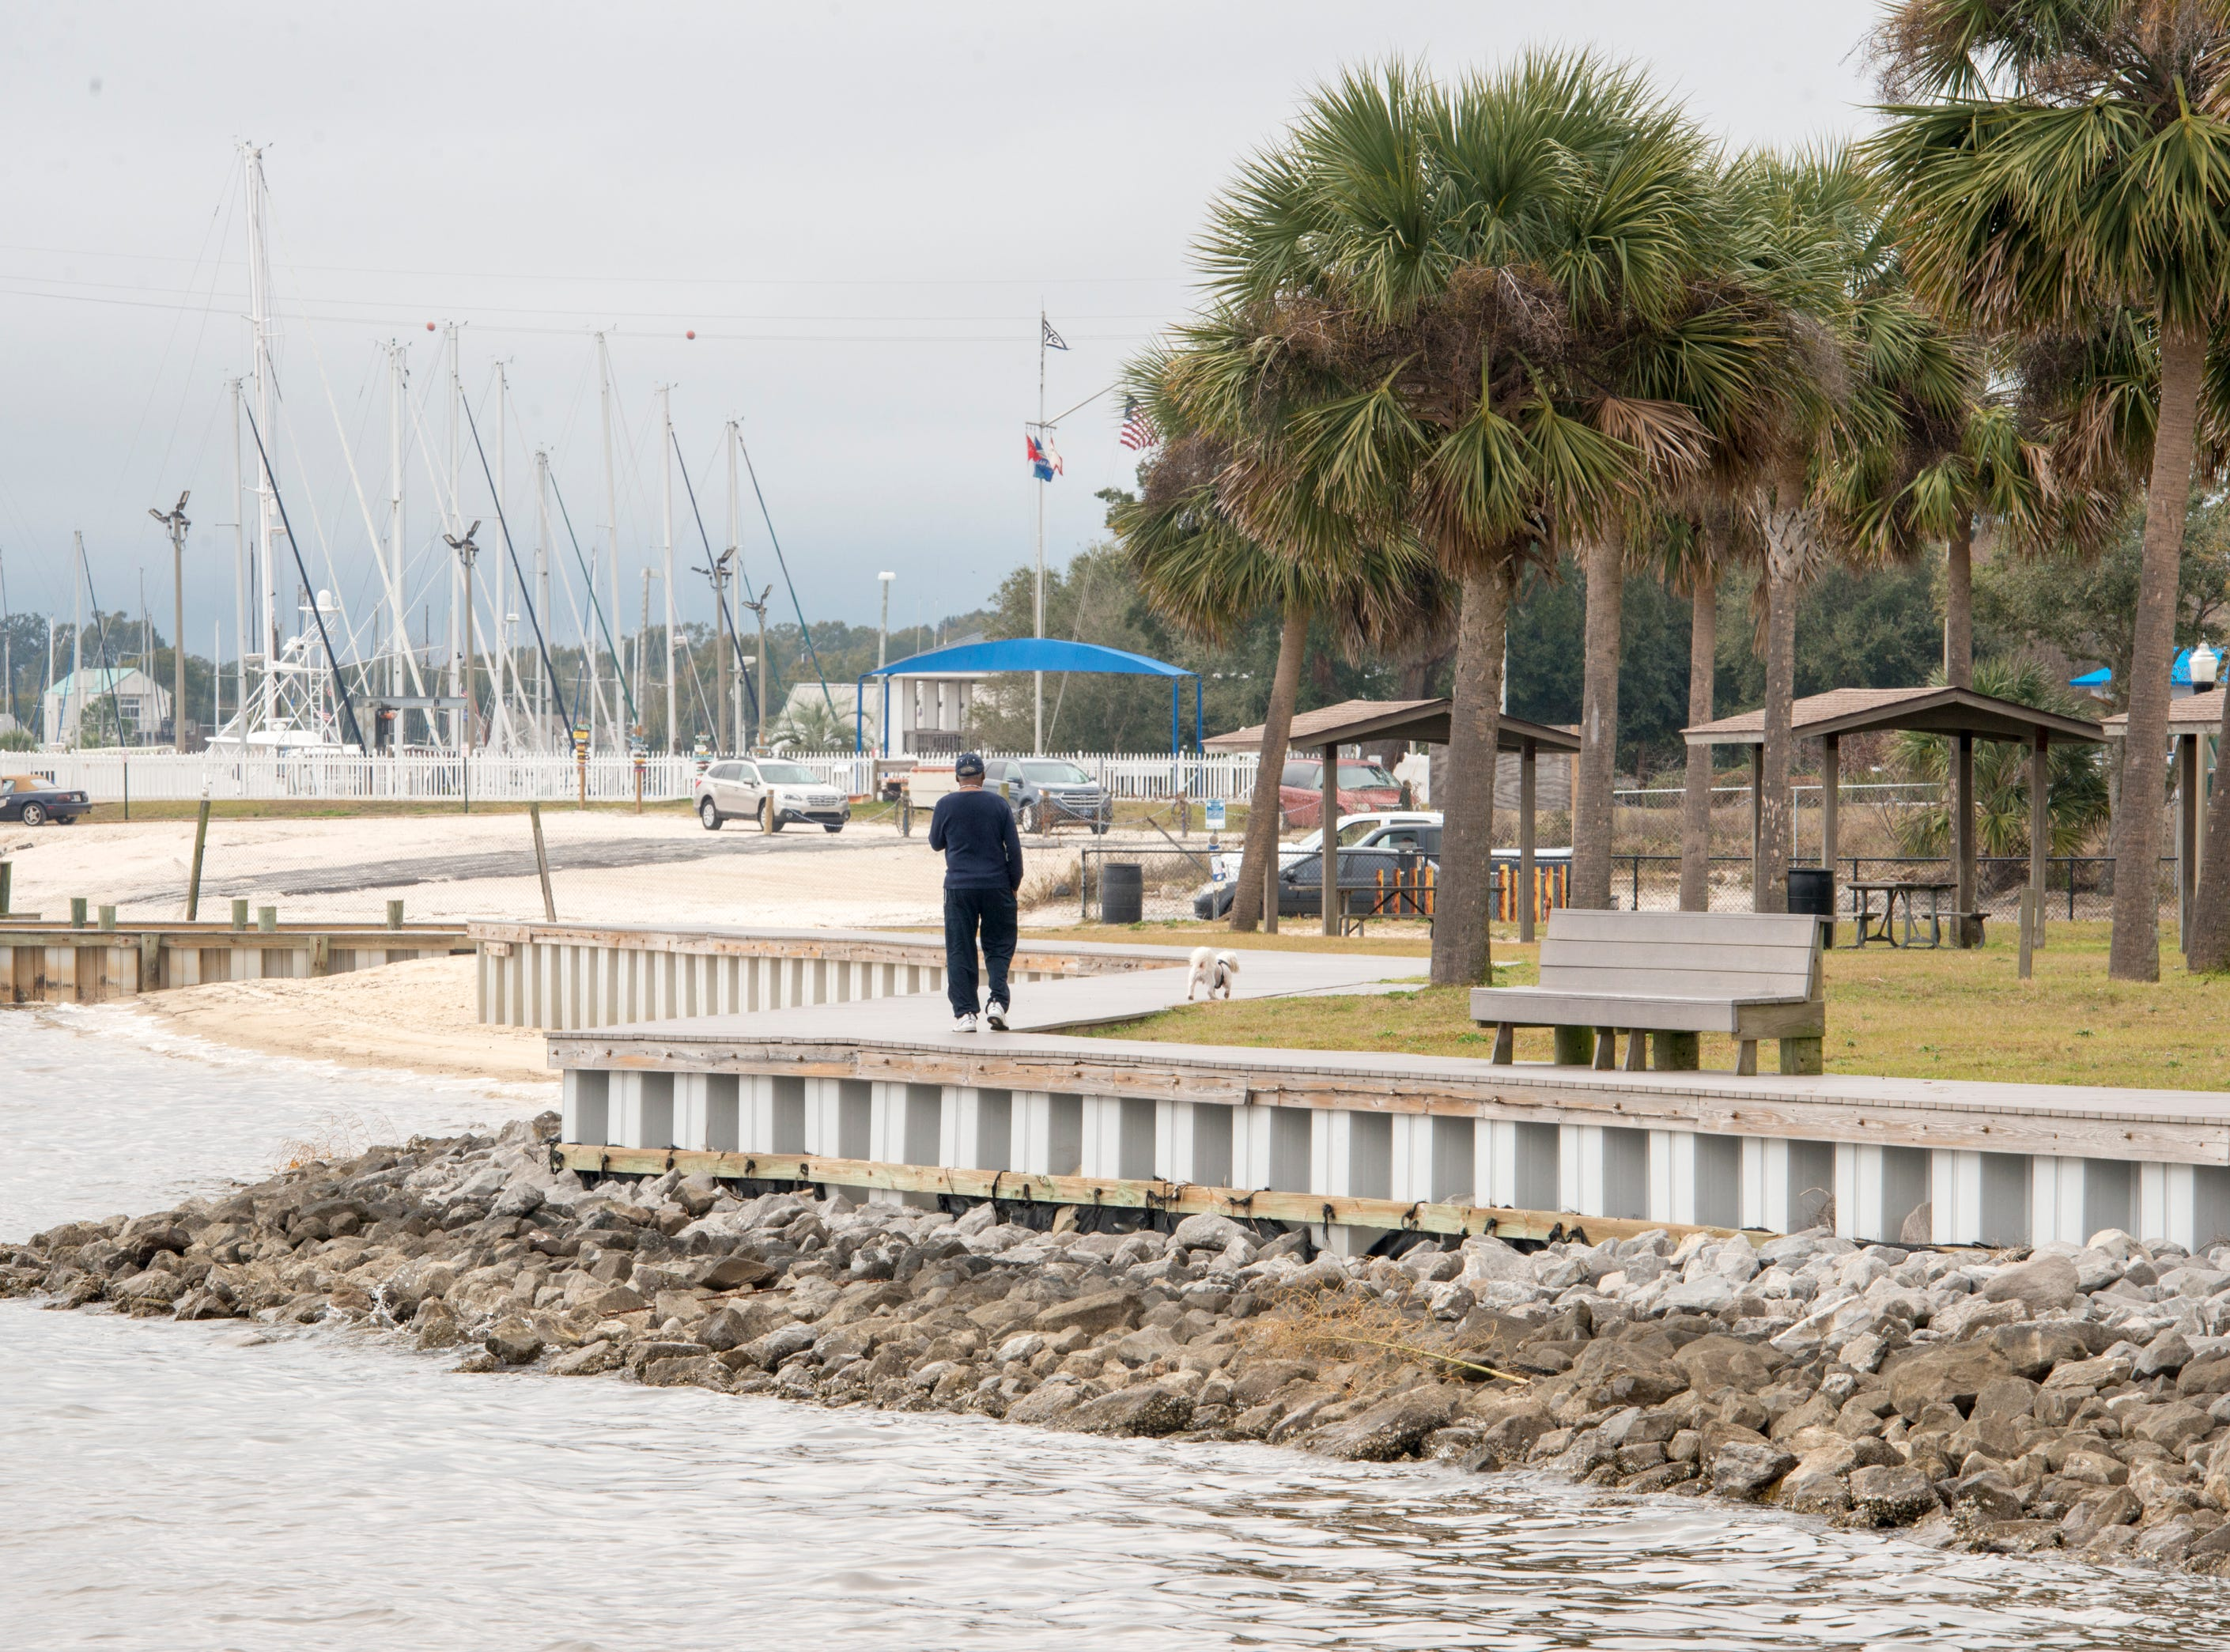 Joe Holmes walks his dog Bentley along the boardwalk at Sanders Beach in Pensacola on Monday, February 4, 2019.  Pensacola Mayor Grover Robinson plans to ask the Pensacola City Council for $60,000 to have the landscape architecture firm SCAPE study ways to improvement access, connectivity and resiliency along the waterfront between Joe Patti's Seafood to Bayou Chico. If approved, the funding would extend the boundaries of an existing SCAPE funded by Pensacola entrepreneur and philanthropist Quint Studer.